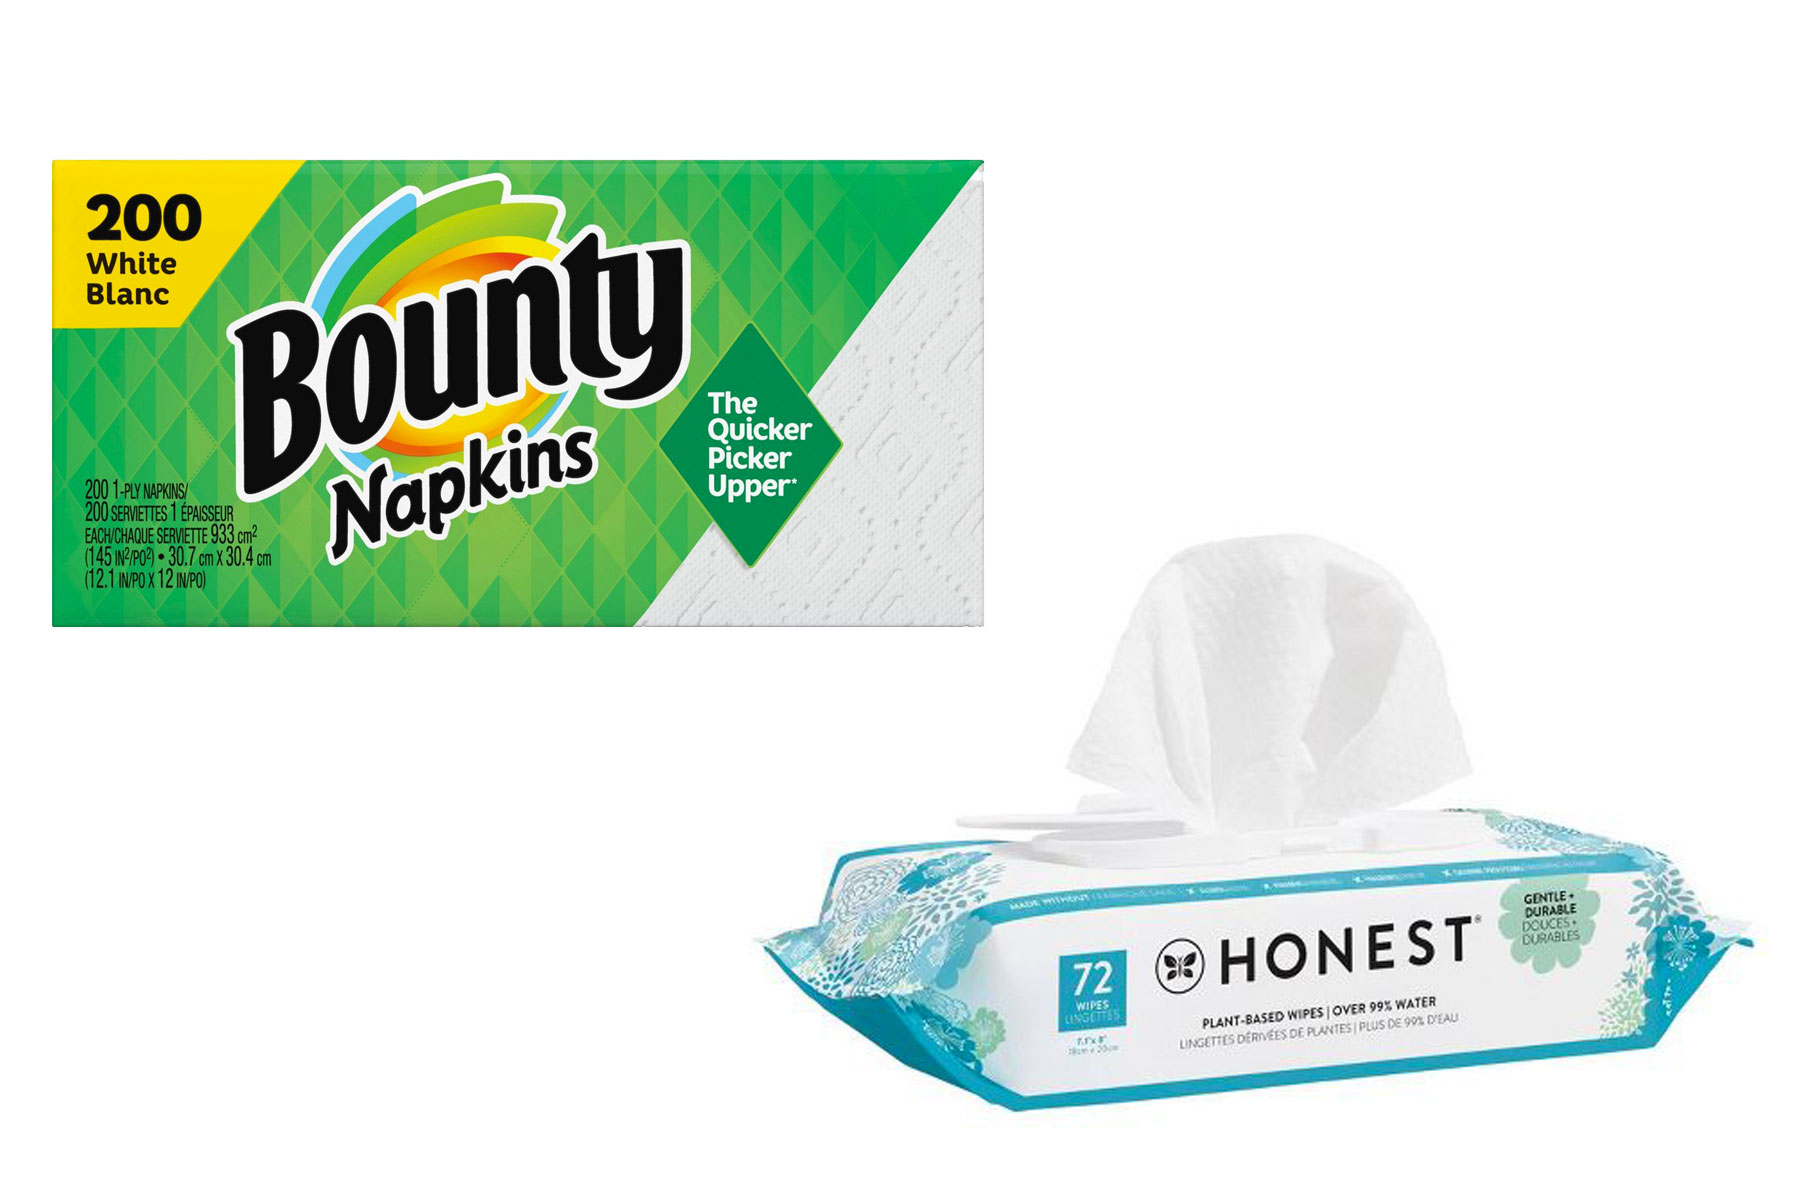 Bounty napkins and Honest Co. baby wipes